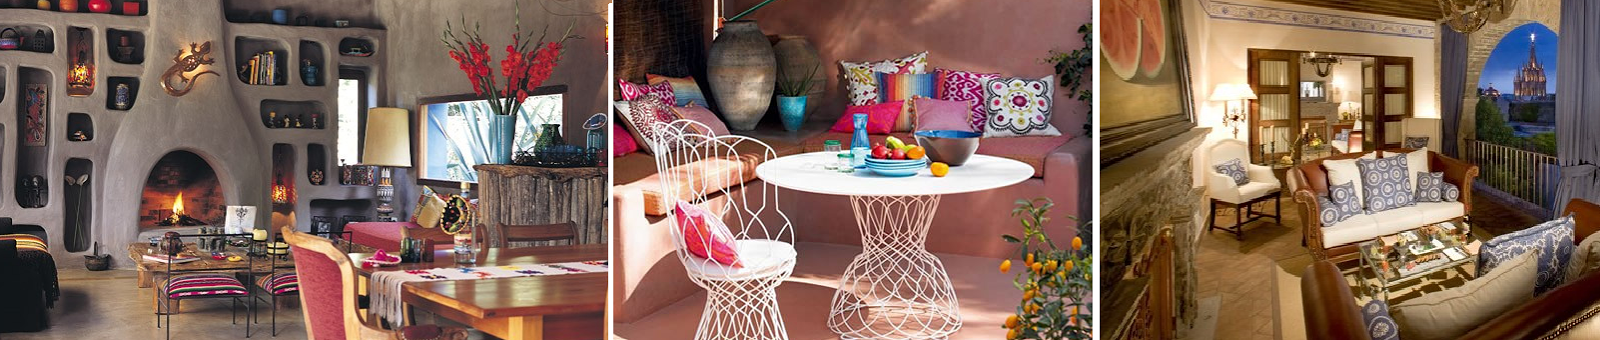 decoracion de interiores estilo rustico mexicano:Decoracion estilo Mexicano ~ Decoracion Casas. Ideas Interiores.